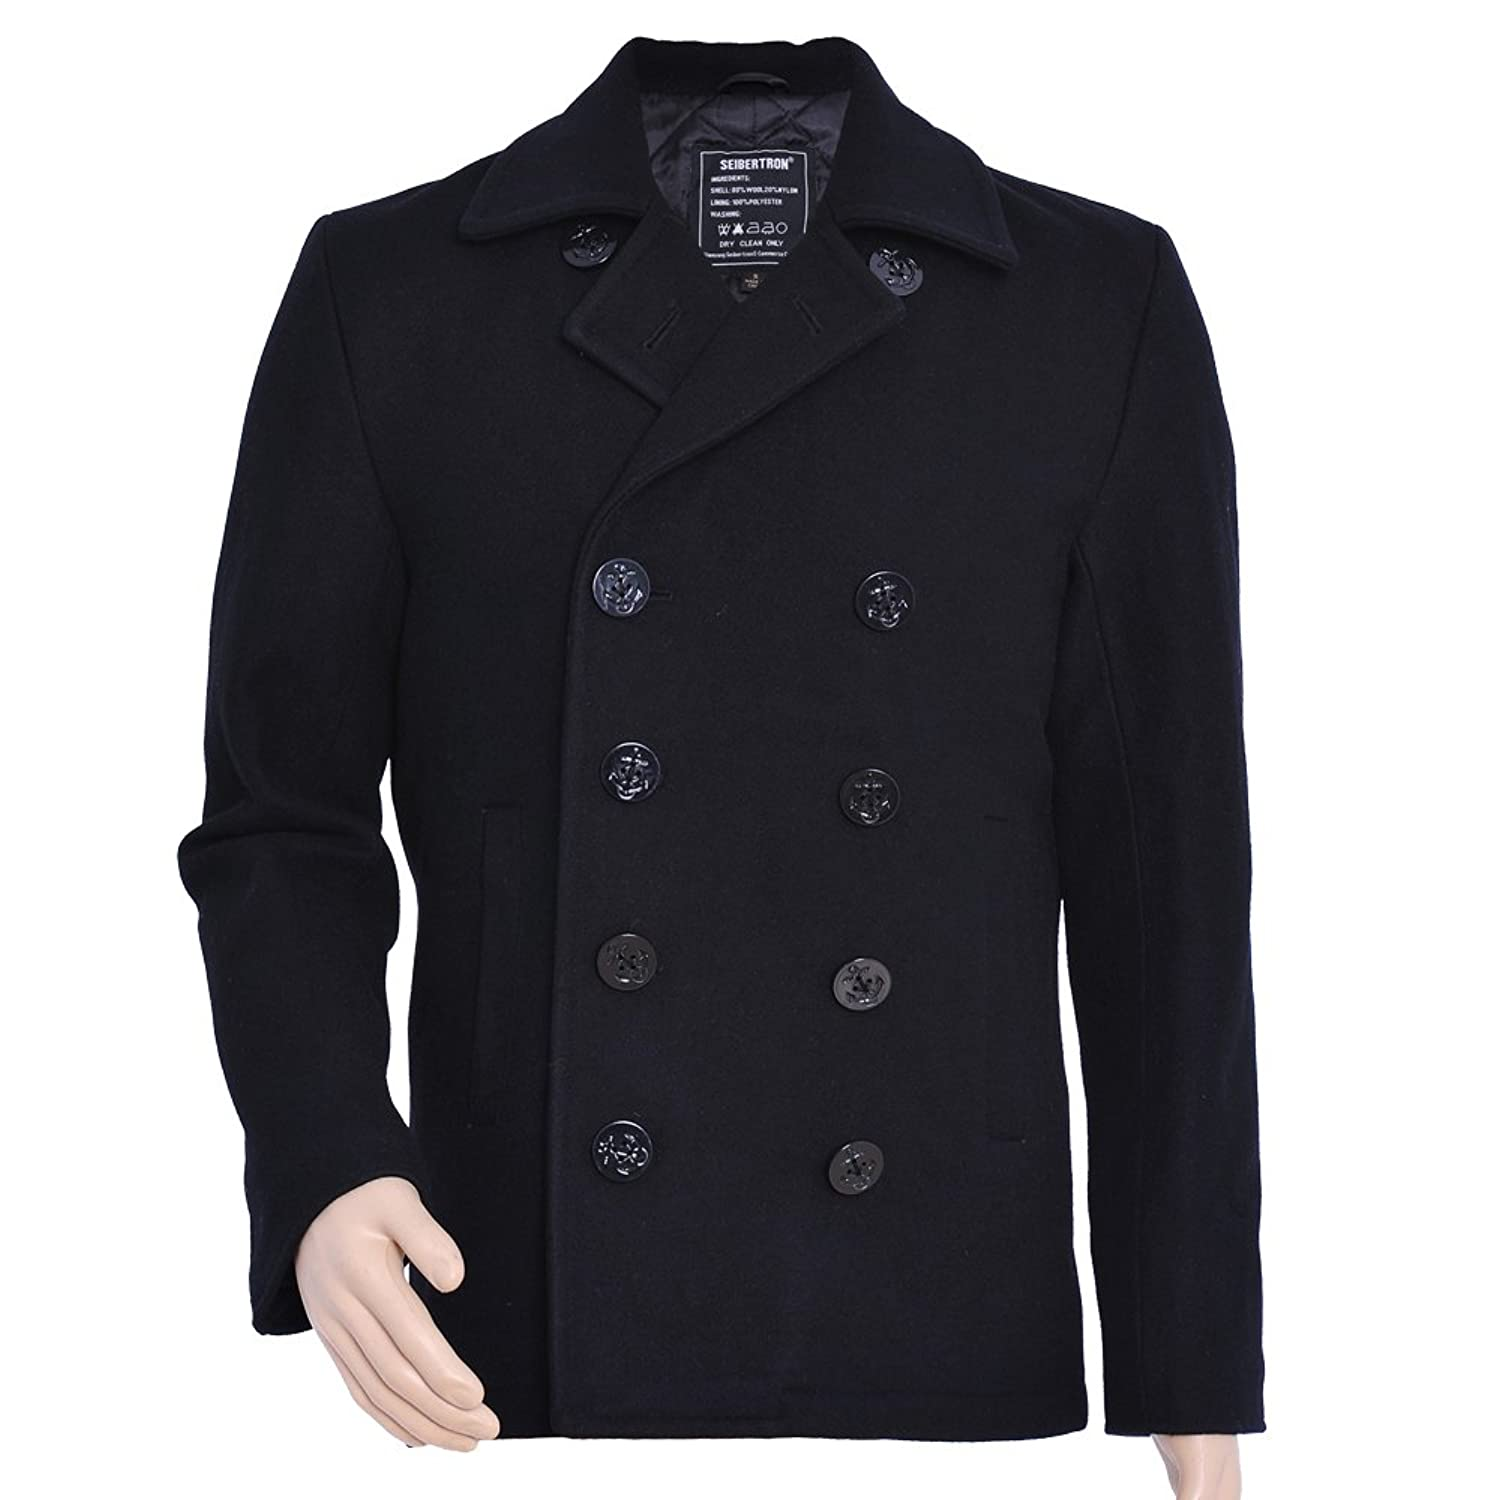 Images of Us Navy Pea Coat - Reikian